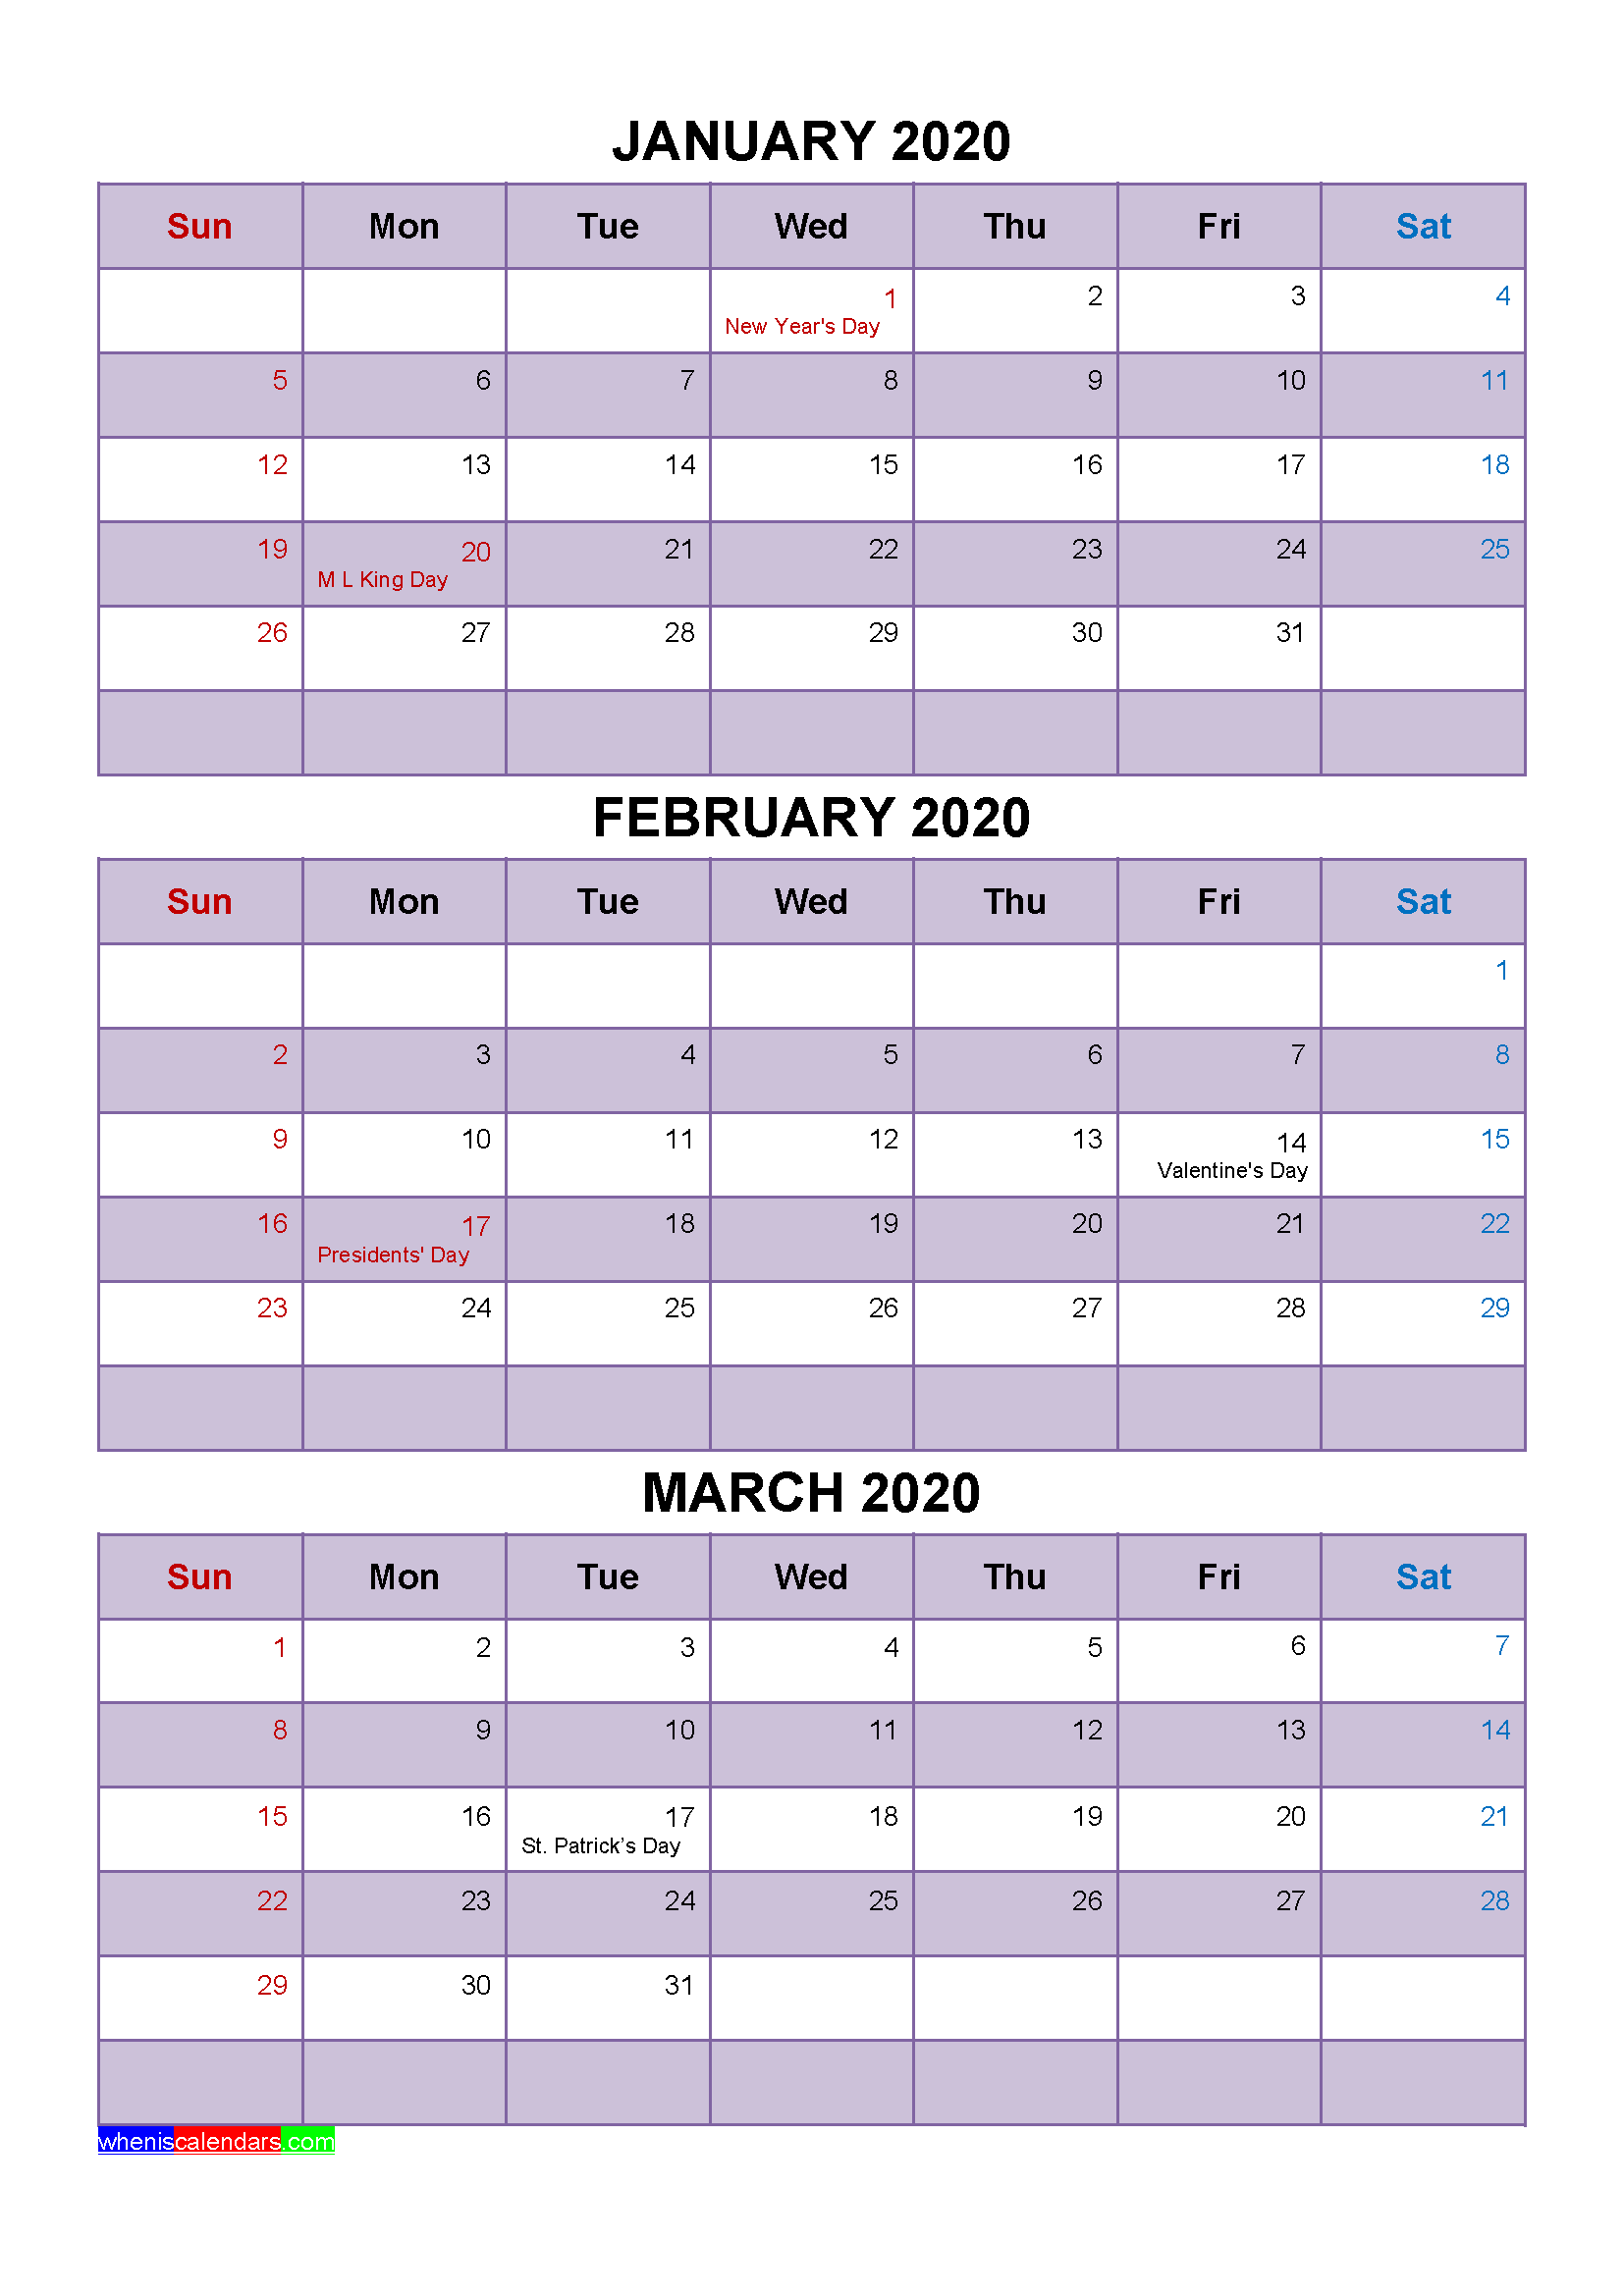 Free Printable January February March 2020 Calendar with Holidays as Word, PDF